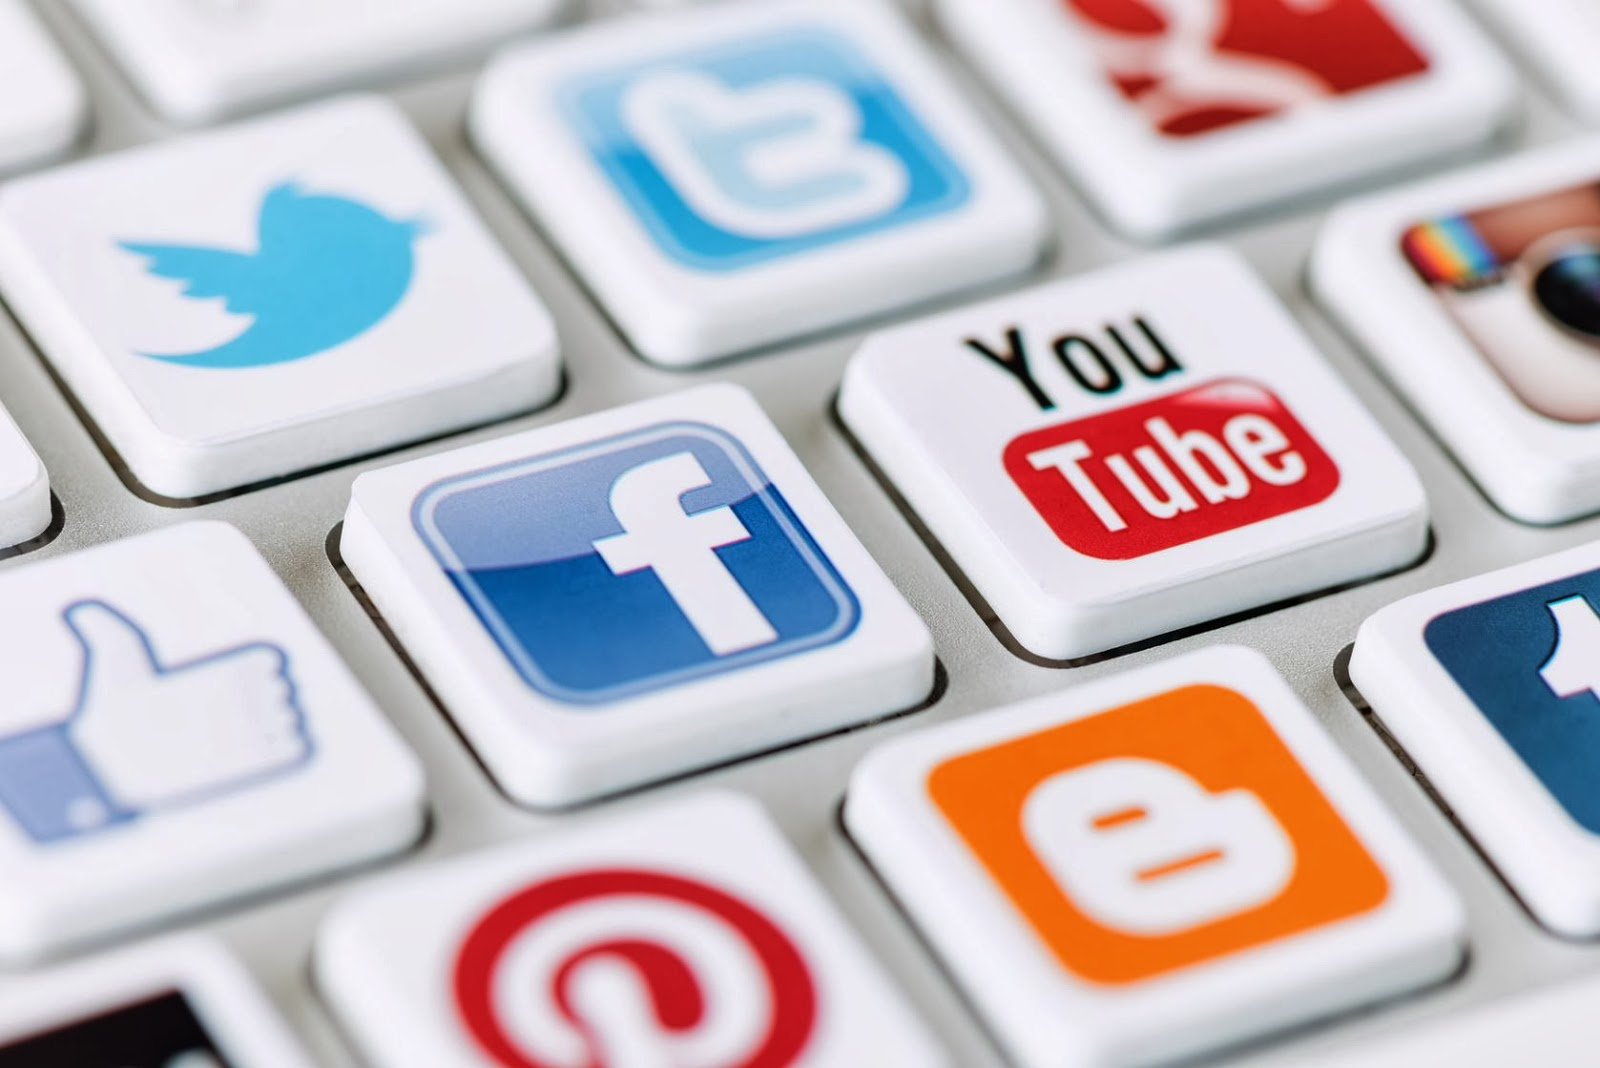 has social media changed the way we communicate